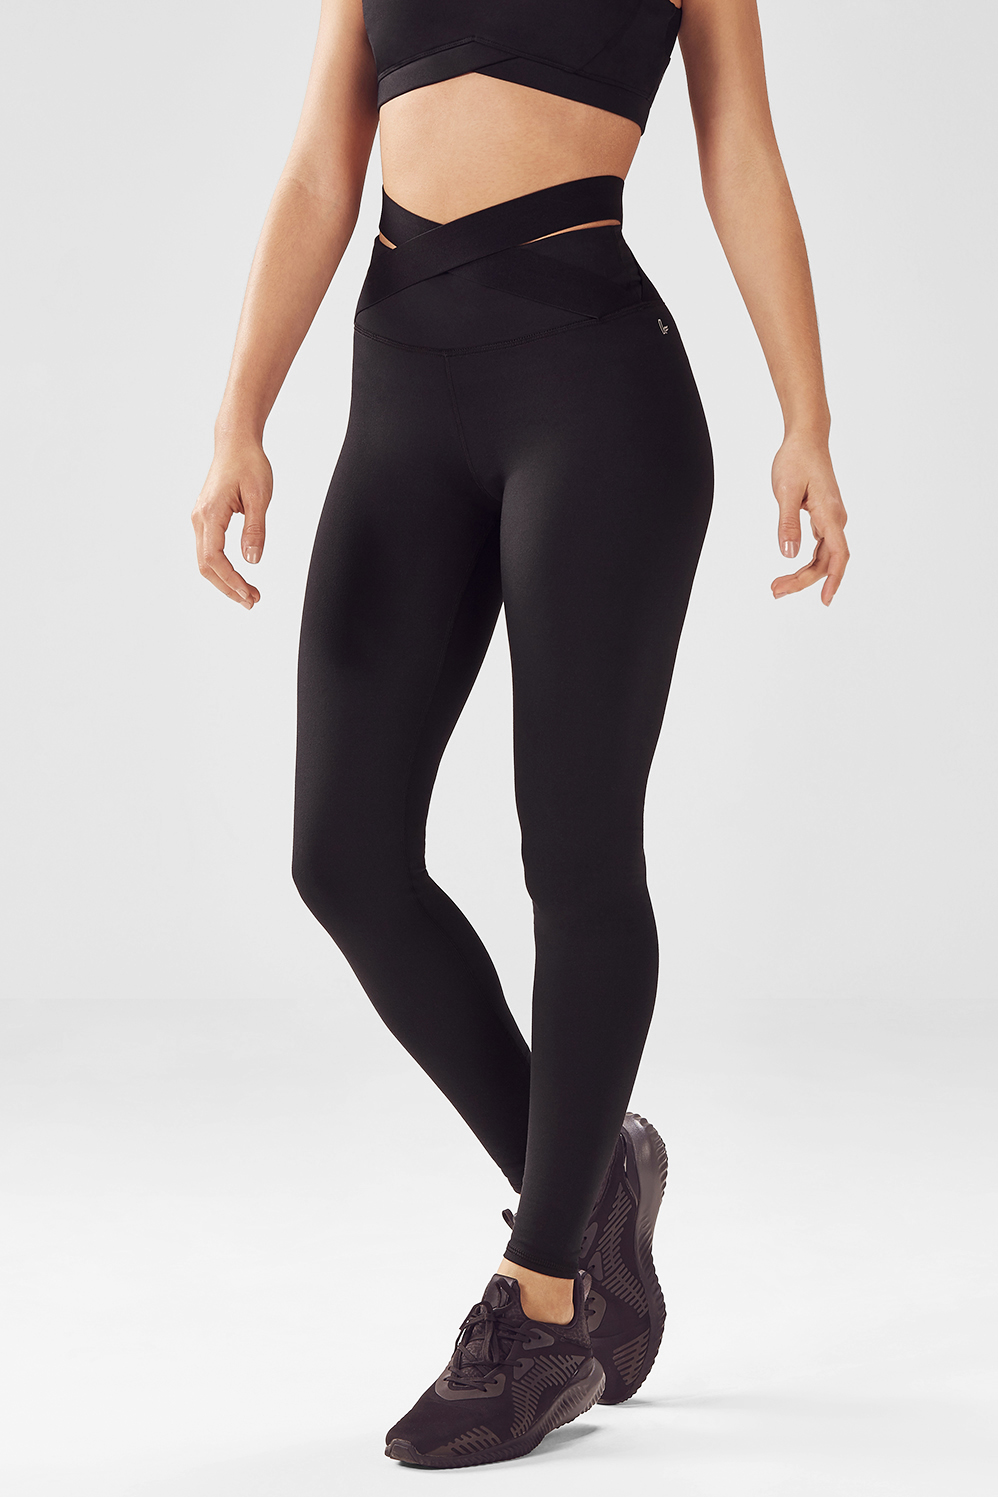 6e2bc414c High-Waisted Statement PowerHold® Leggings - Fabletics